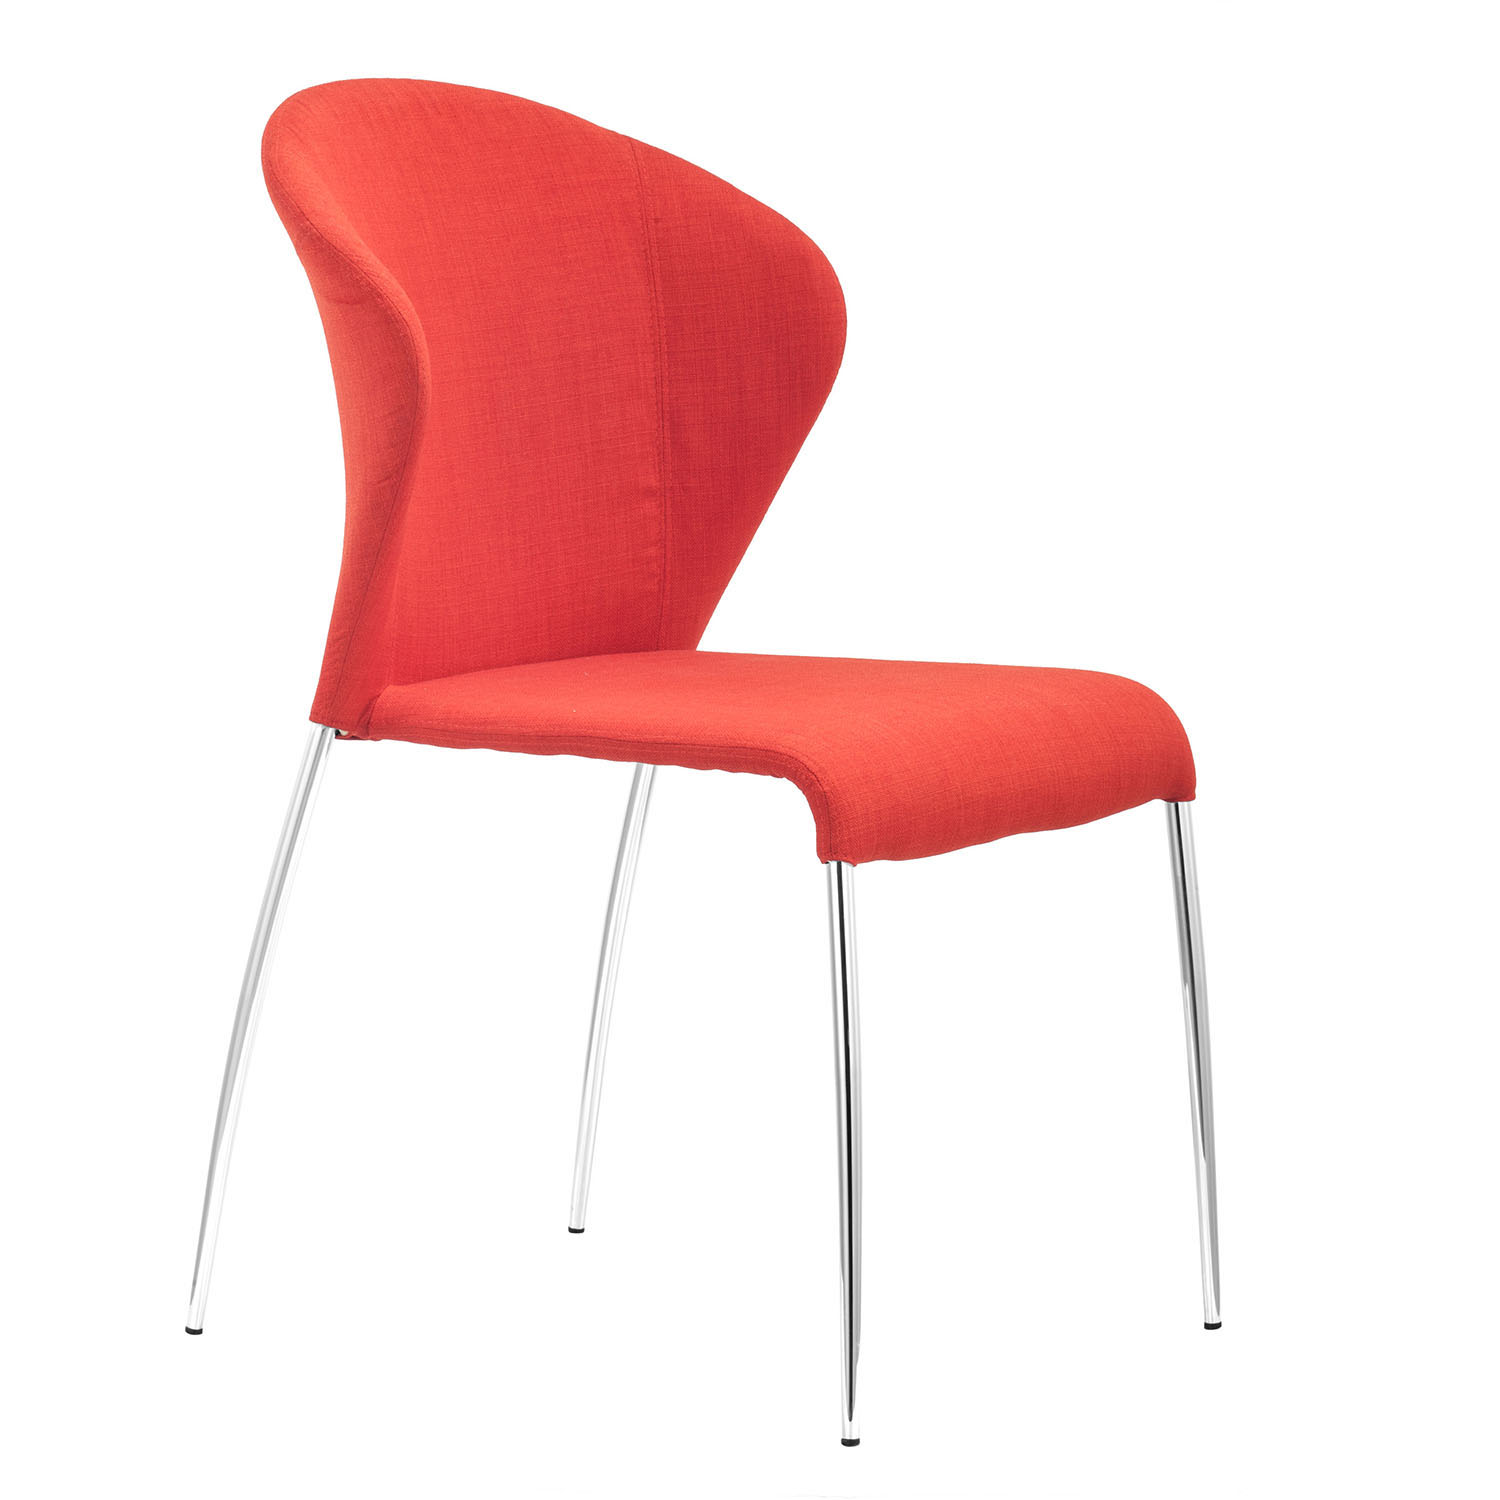 Magnificent Modern Oulu Dining Chairs  Product Photo